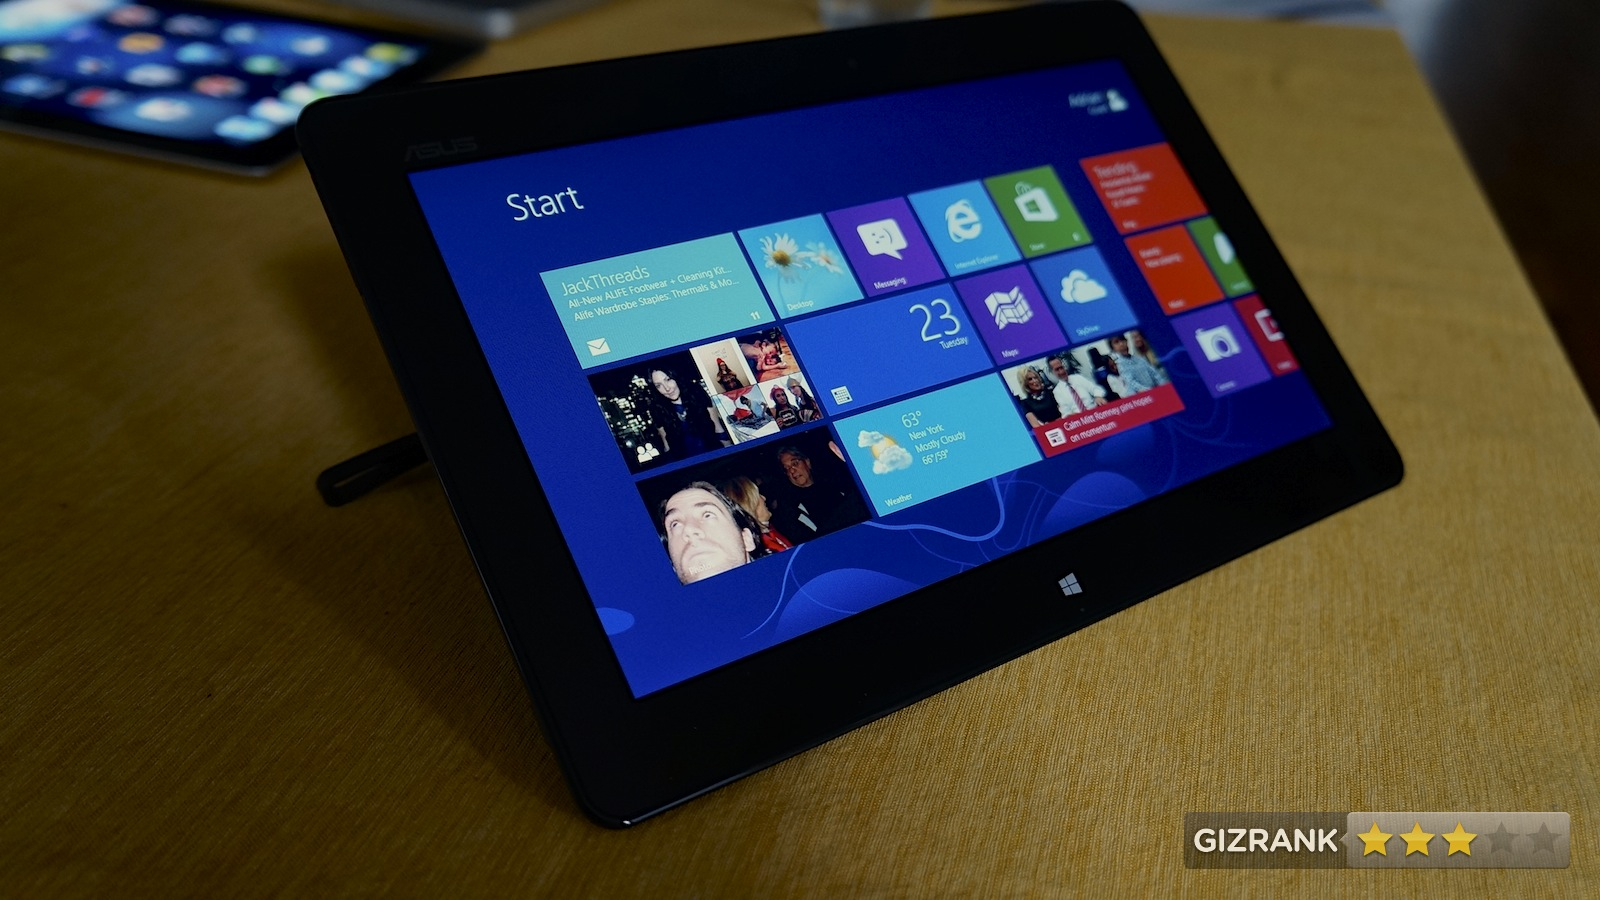 Click here to read Asus Vivo Tab RT Review: A Windows 8 Tablet Is Here, But What Do We Do With It?